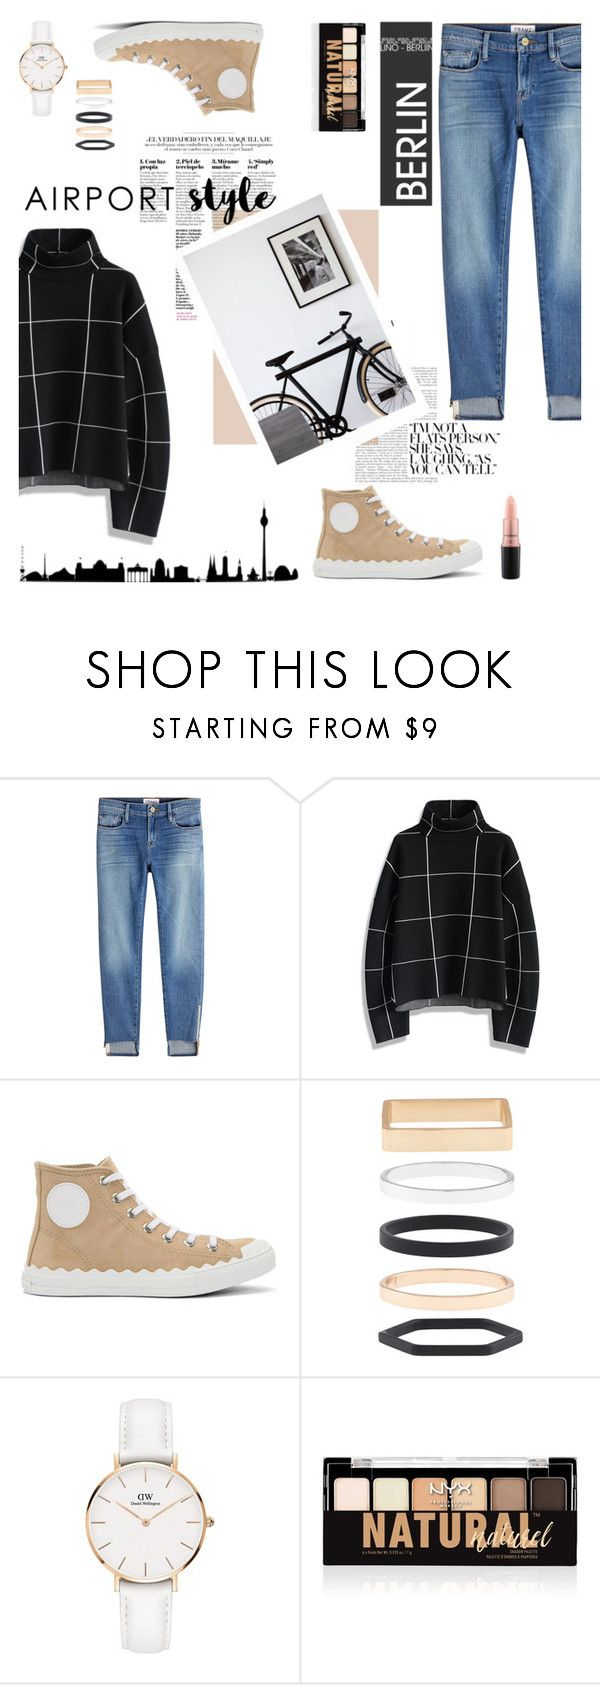 """""""Destination: Berlin"""" by random11-1 ❤ liked on Polyvore featuring Frame, Chicwish, Chloé, Accessorize, Daniel Wellington, NYX, MAC Cosmetics and airportstyle"""